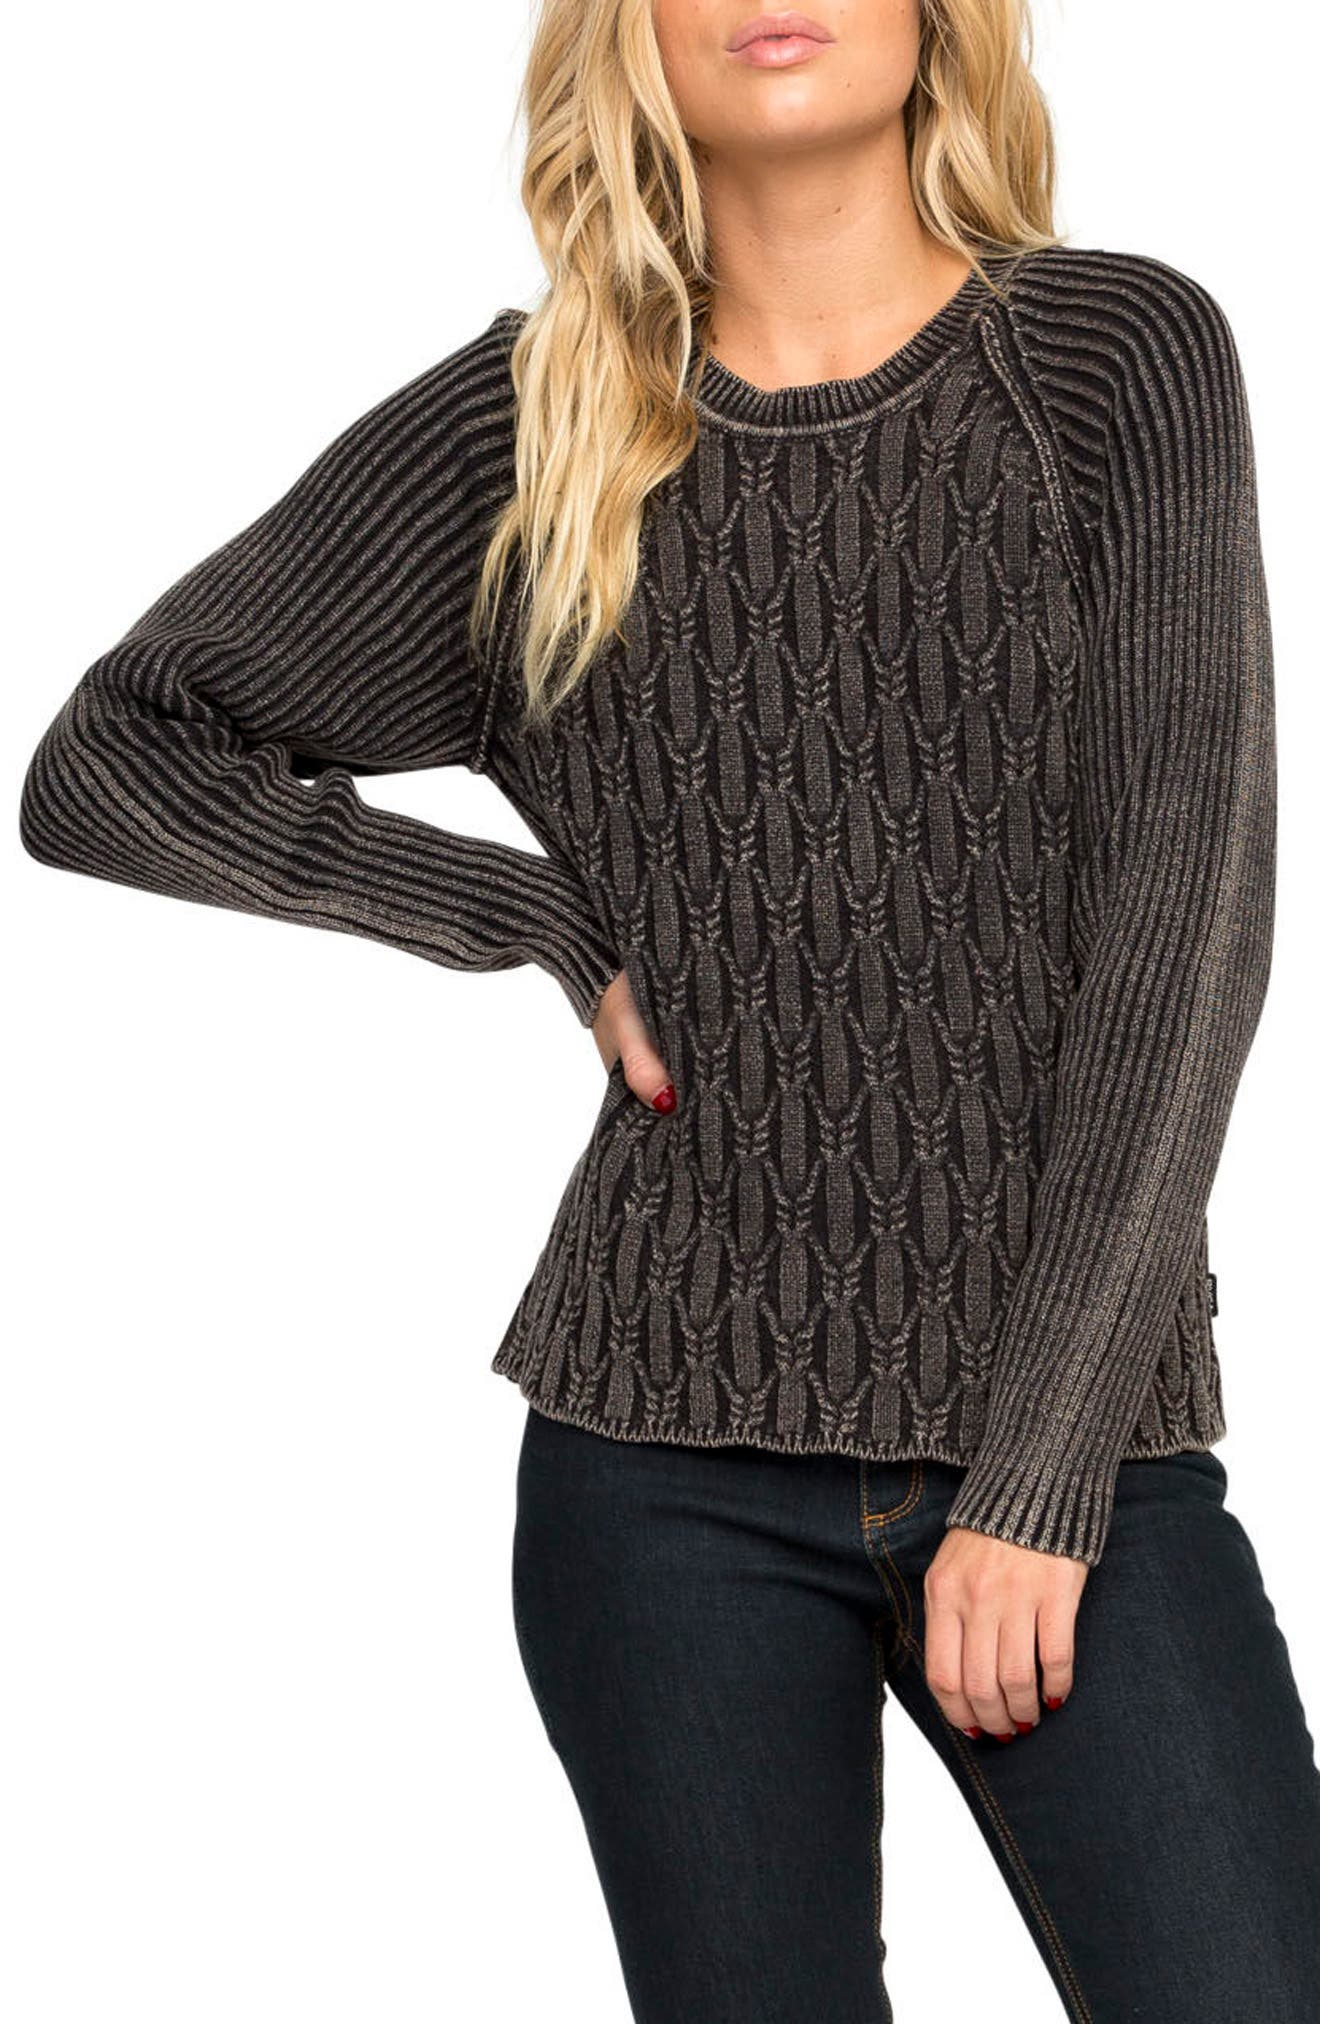 Chained Cotton Sweater,                         Main,                         color, Black